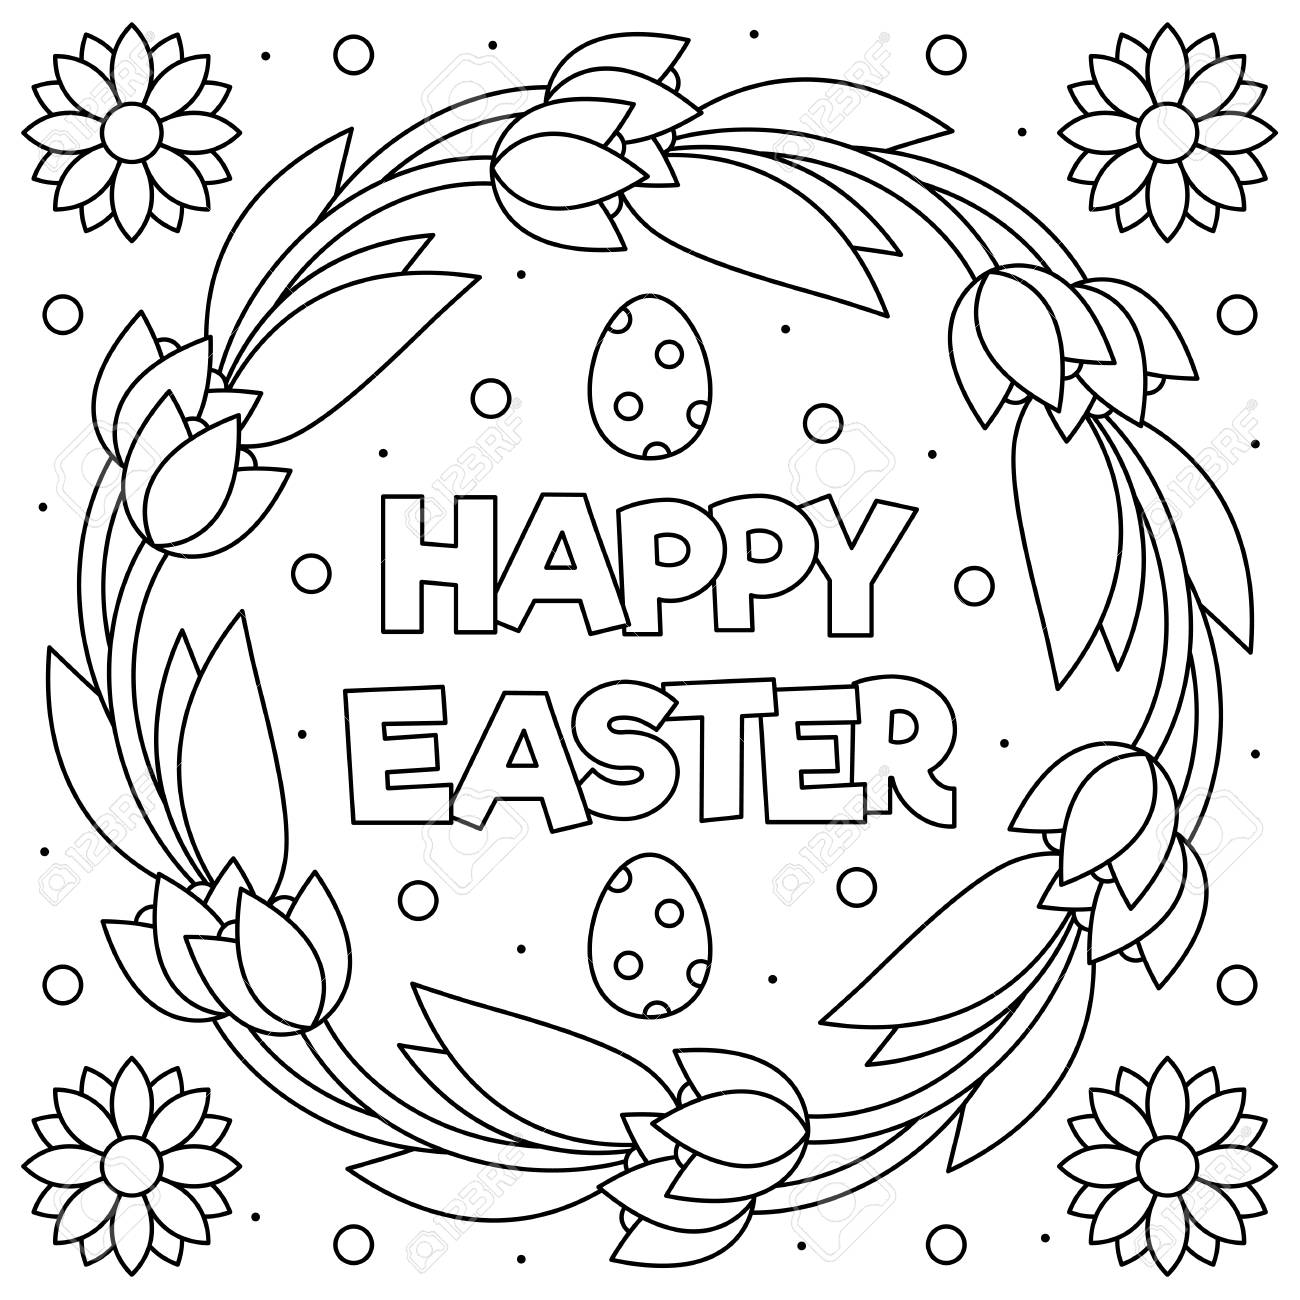 Happy Easter, - Free-N-Fun Easter from Oriental Trading | 1300x1300